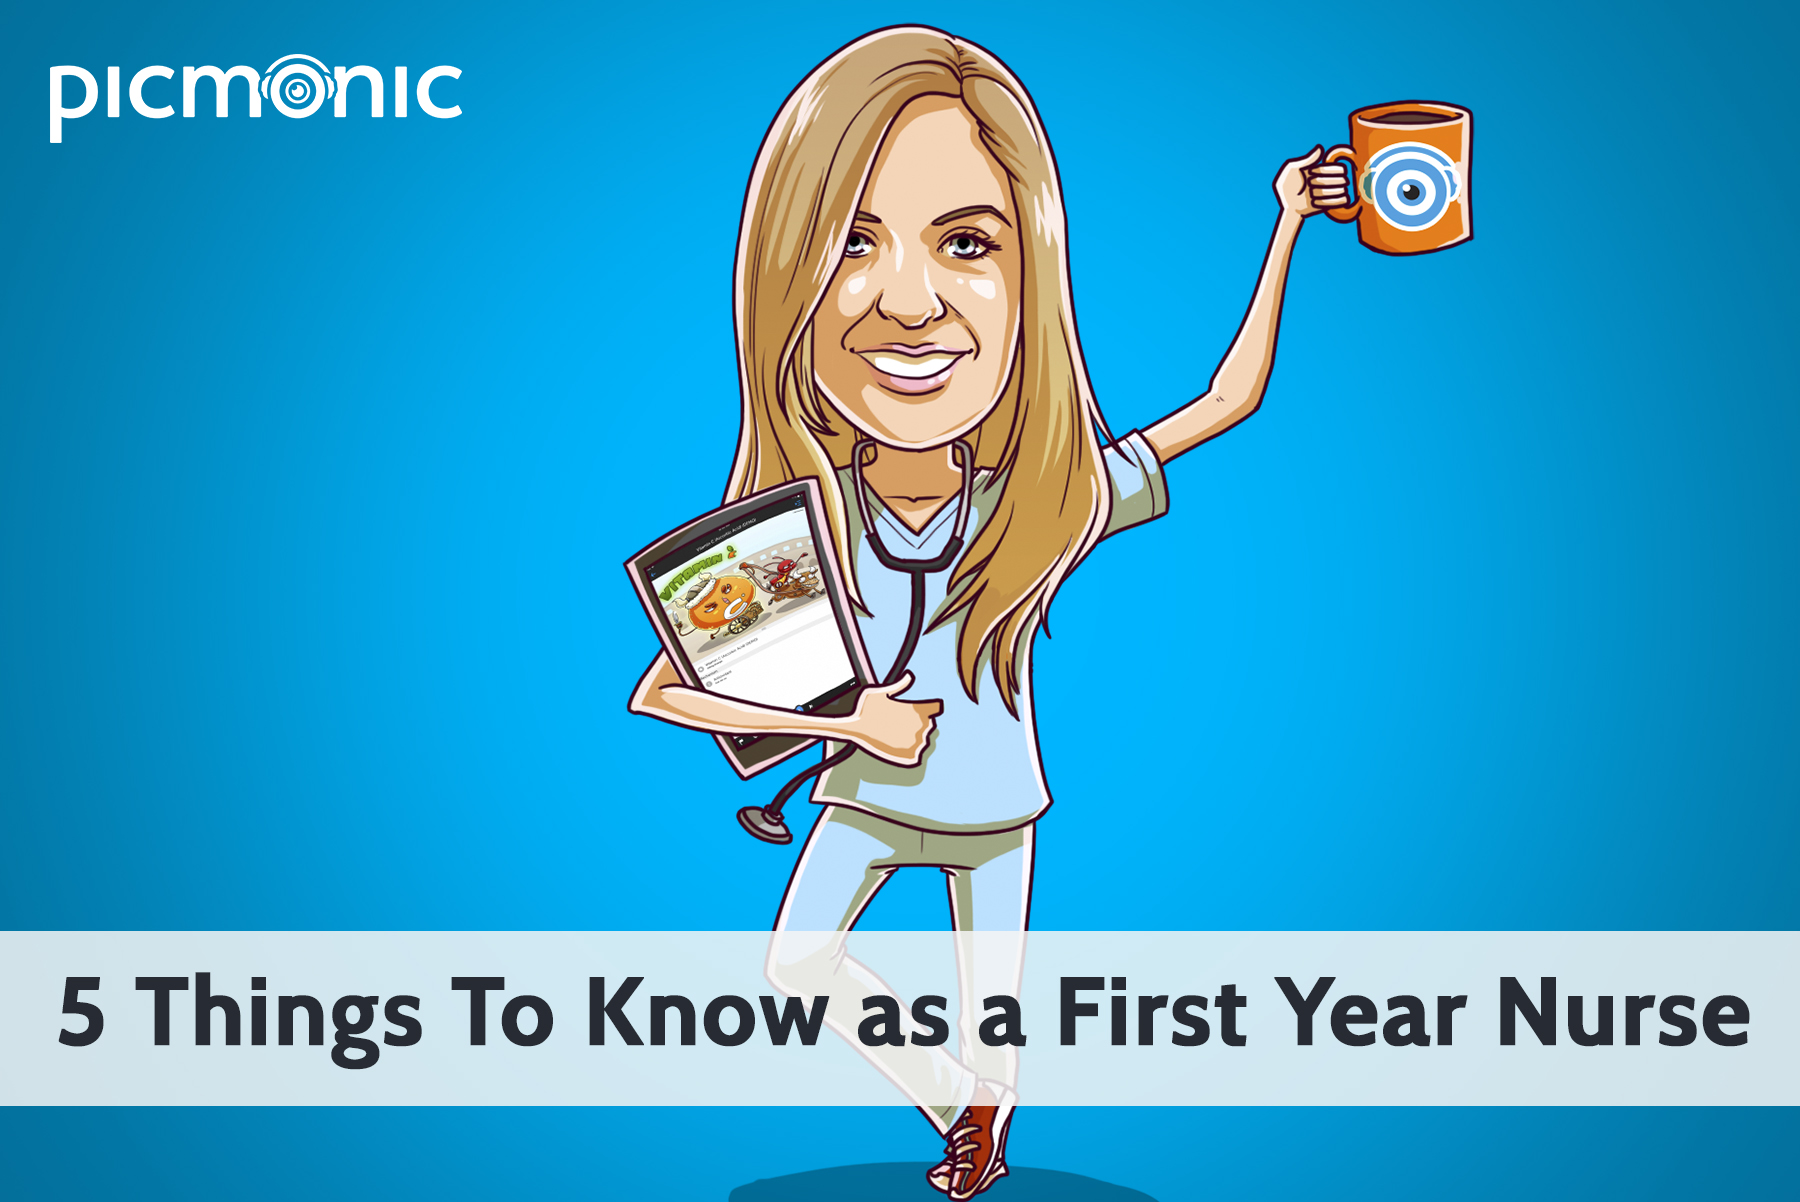 5 Things to Know as a First Year Nurse